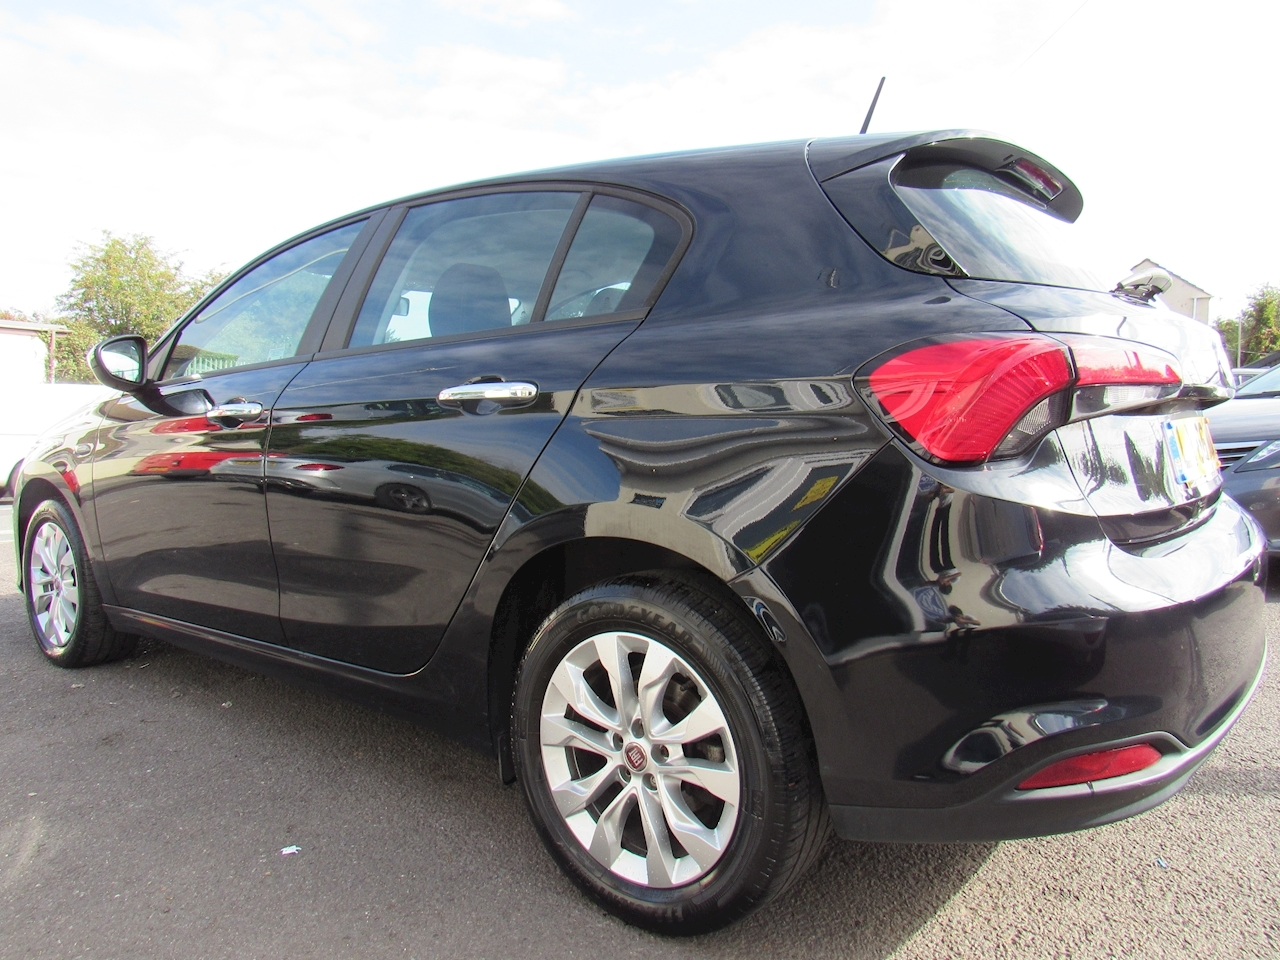 Fiat Tipo Tipo Hatchback 1.4 95hp Easy Hatchback 1.4 Manual Petrol